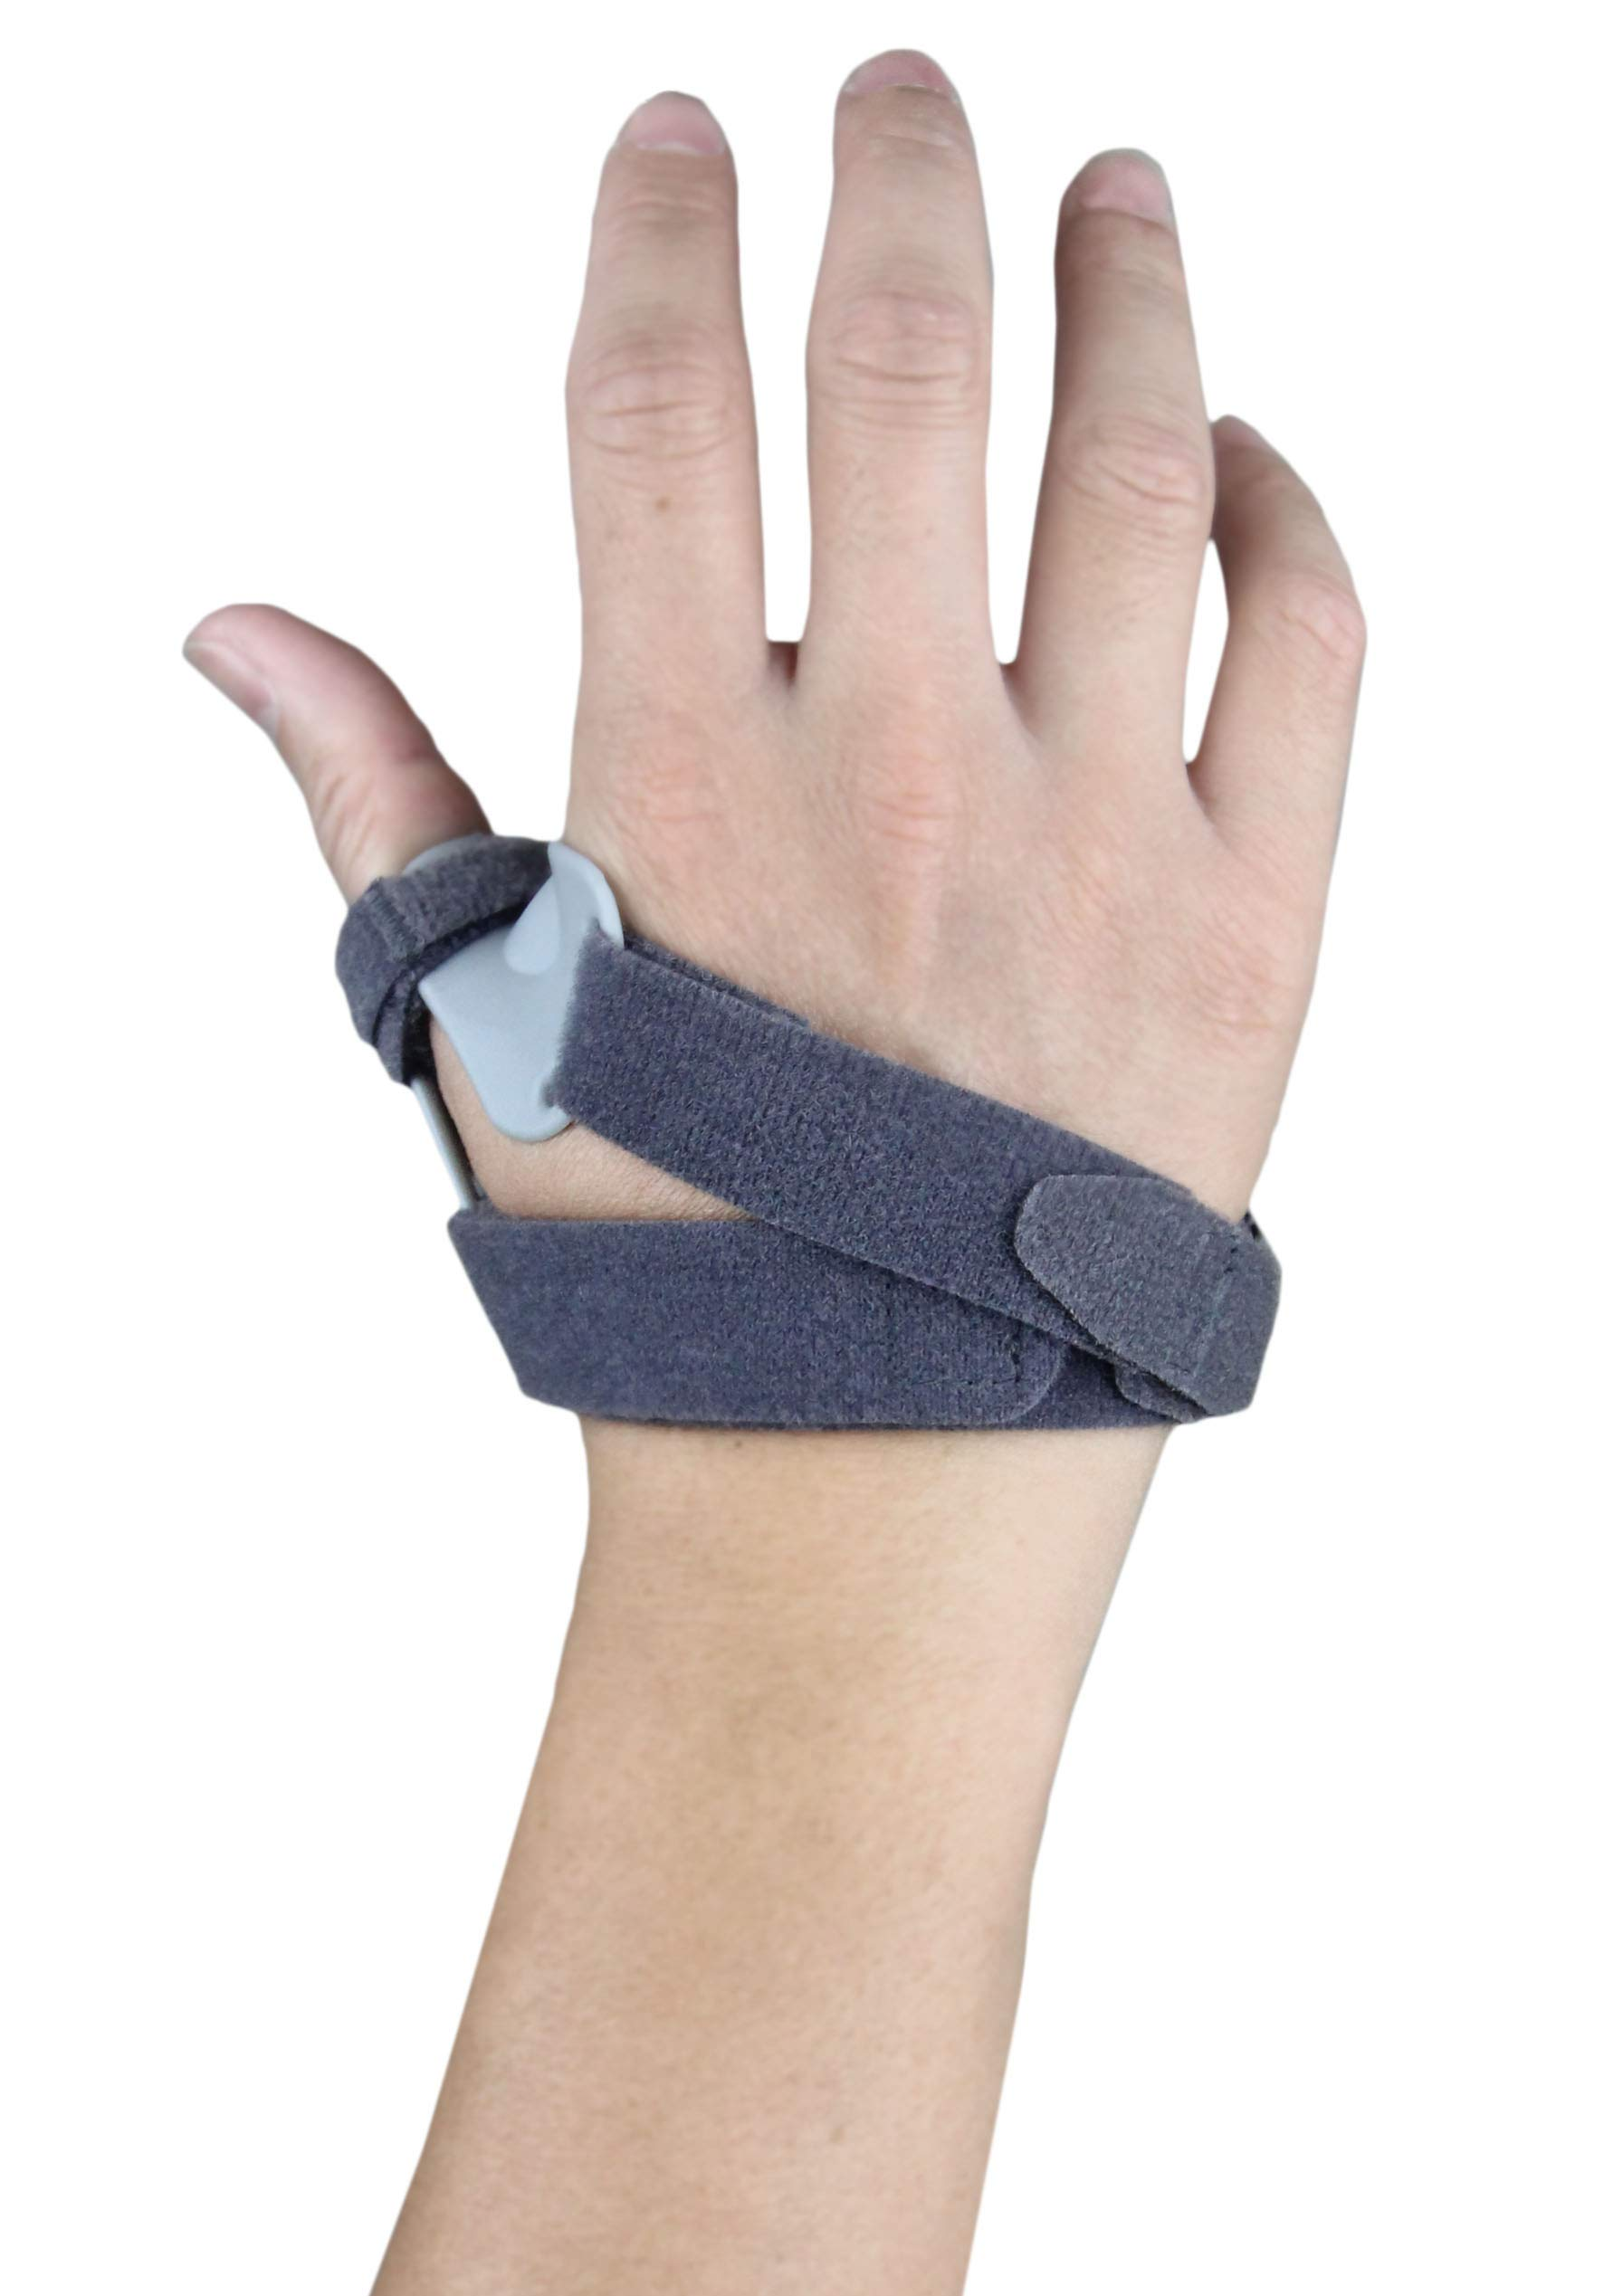 CMC Joint Thumb Arthritis Brace - Restriction Stabilizing Splint for Osteoarthritis and Other Thumb Pain Relief - Medium - Right Hand by MARS WELLNESS (Image #2)